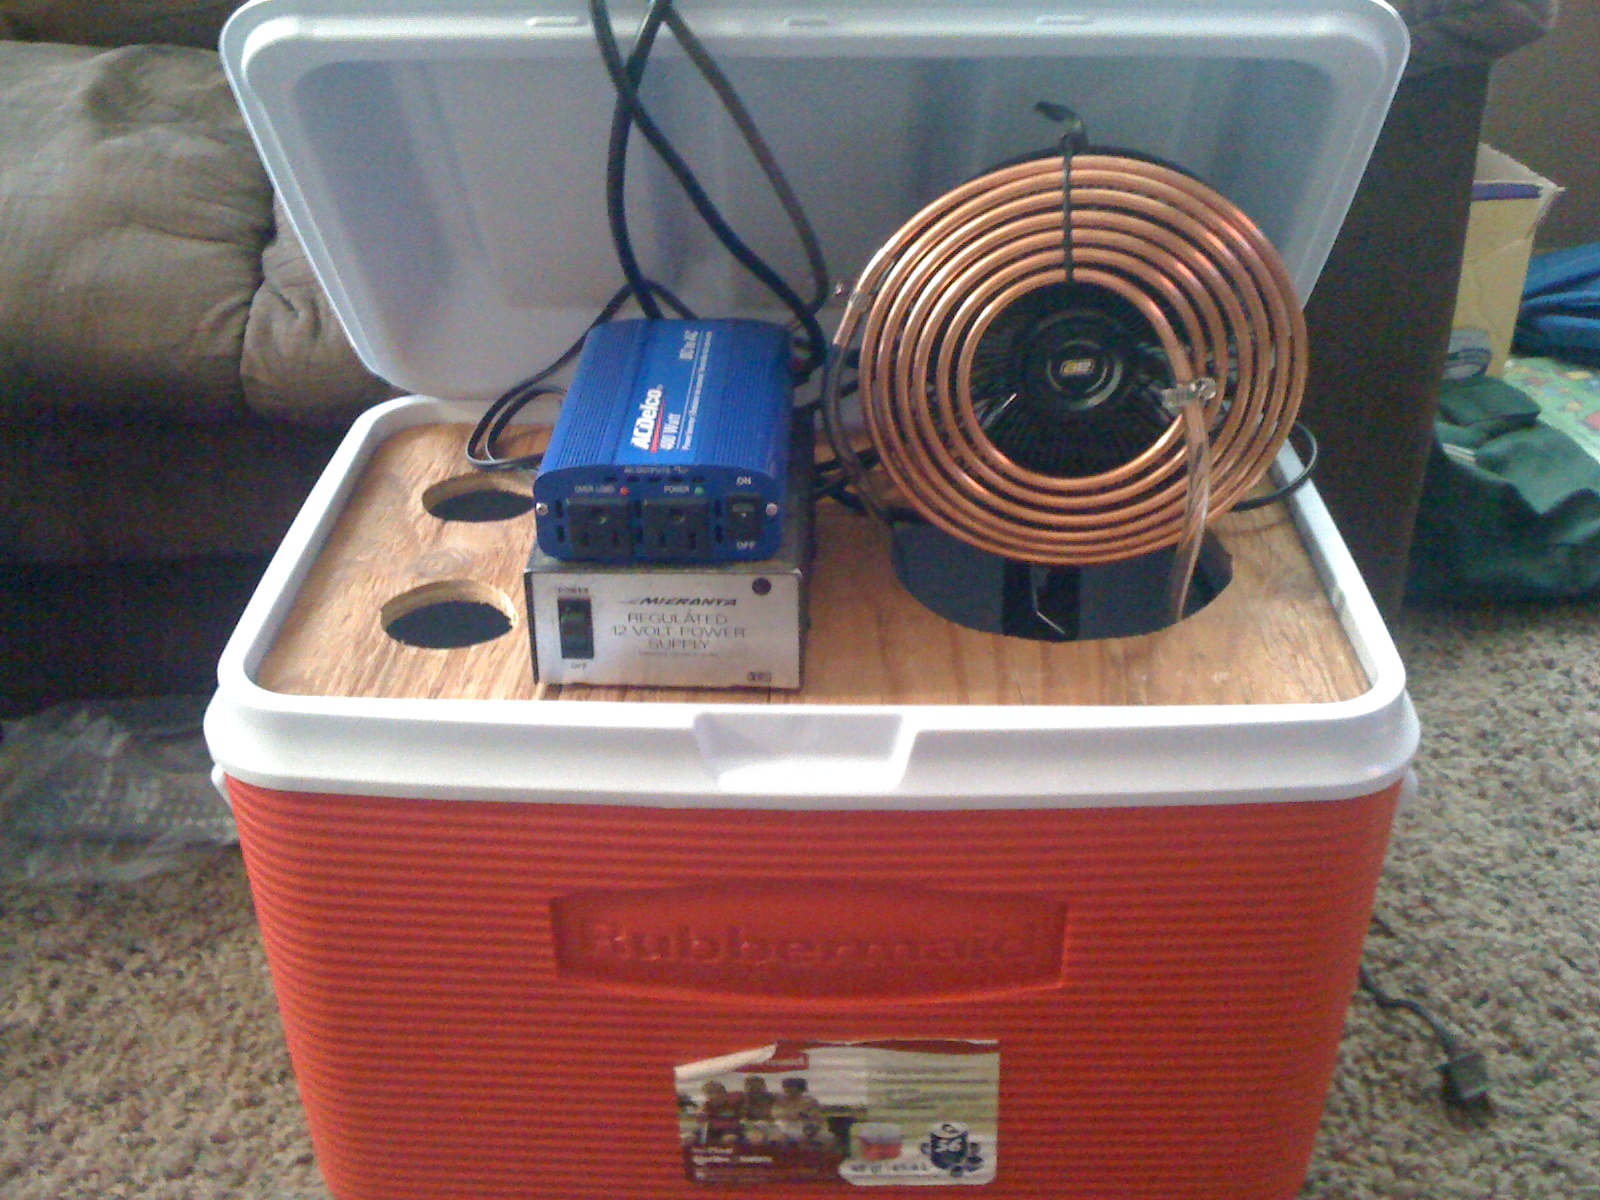 Diy Air Conditioner No Electricity My Electric Car Homemade Air Conditioner